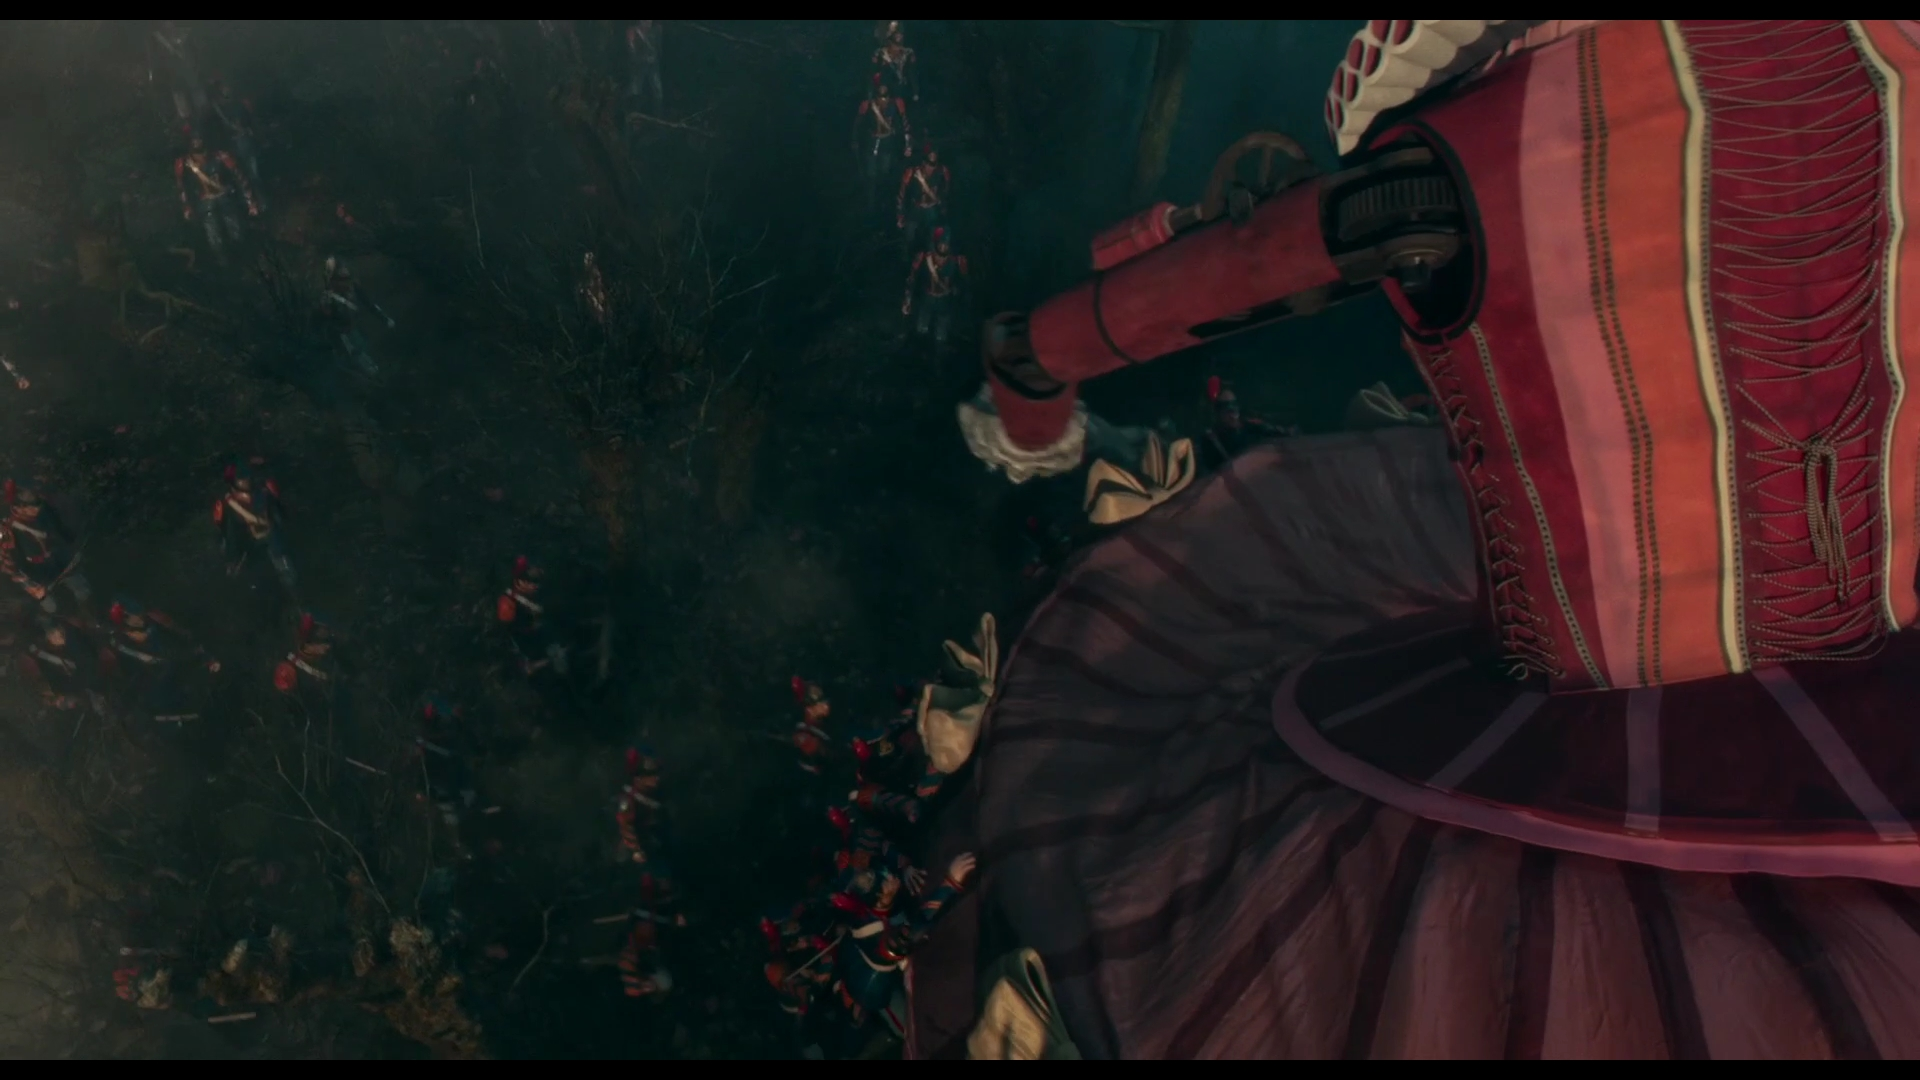 The.Nutcracker.And.The.Four.Realms.2018.1080p.Blu-ray.x264.DTS-BUTTERY.mkv_004507392